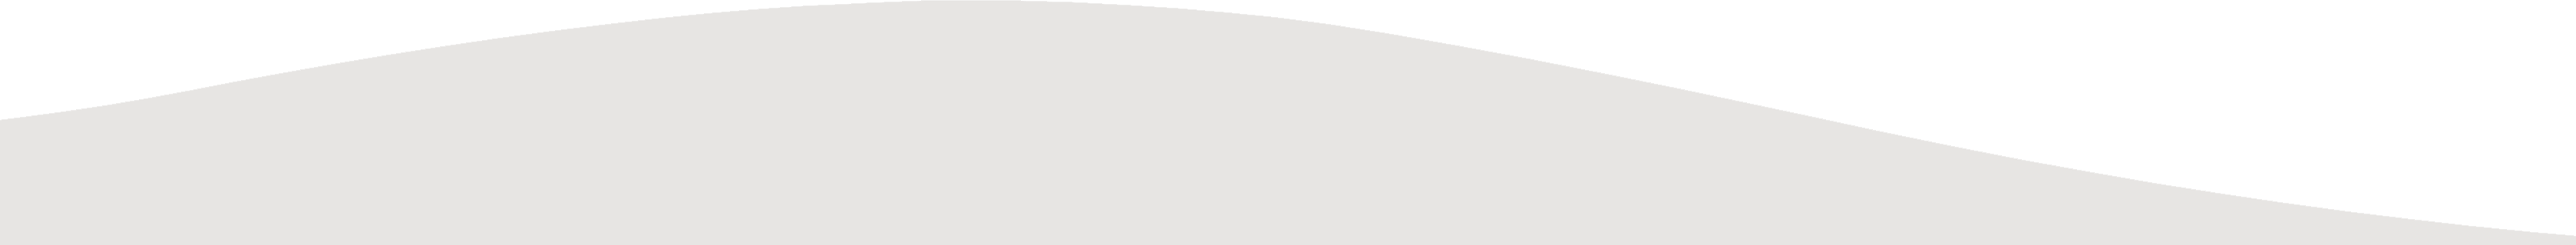 Curve shape separating sections